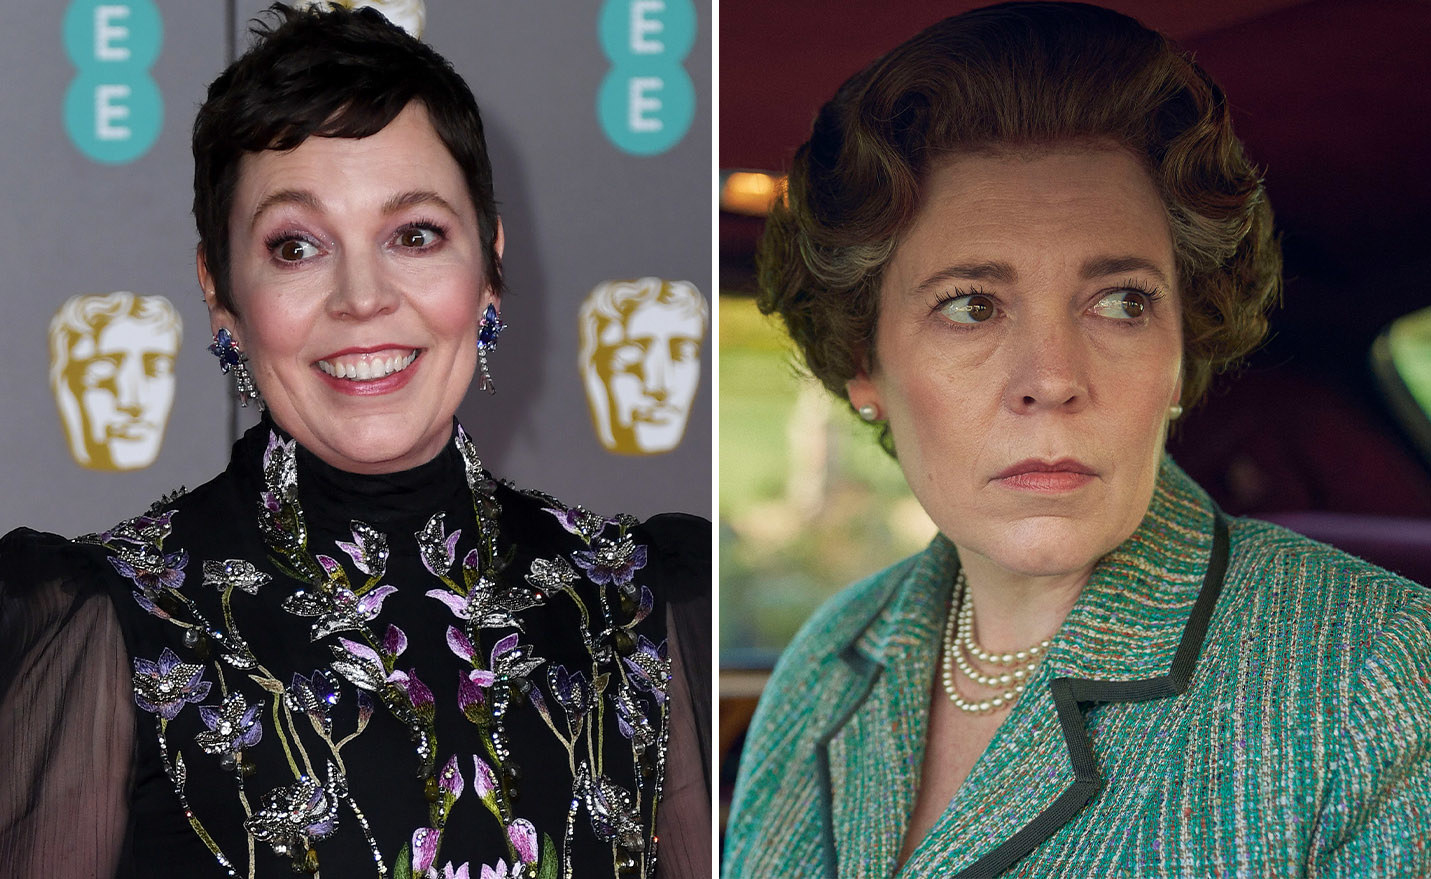 Olivia Colman on the left and Olivia Colman as Queen Elizabeth II on the right